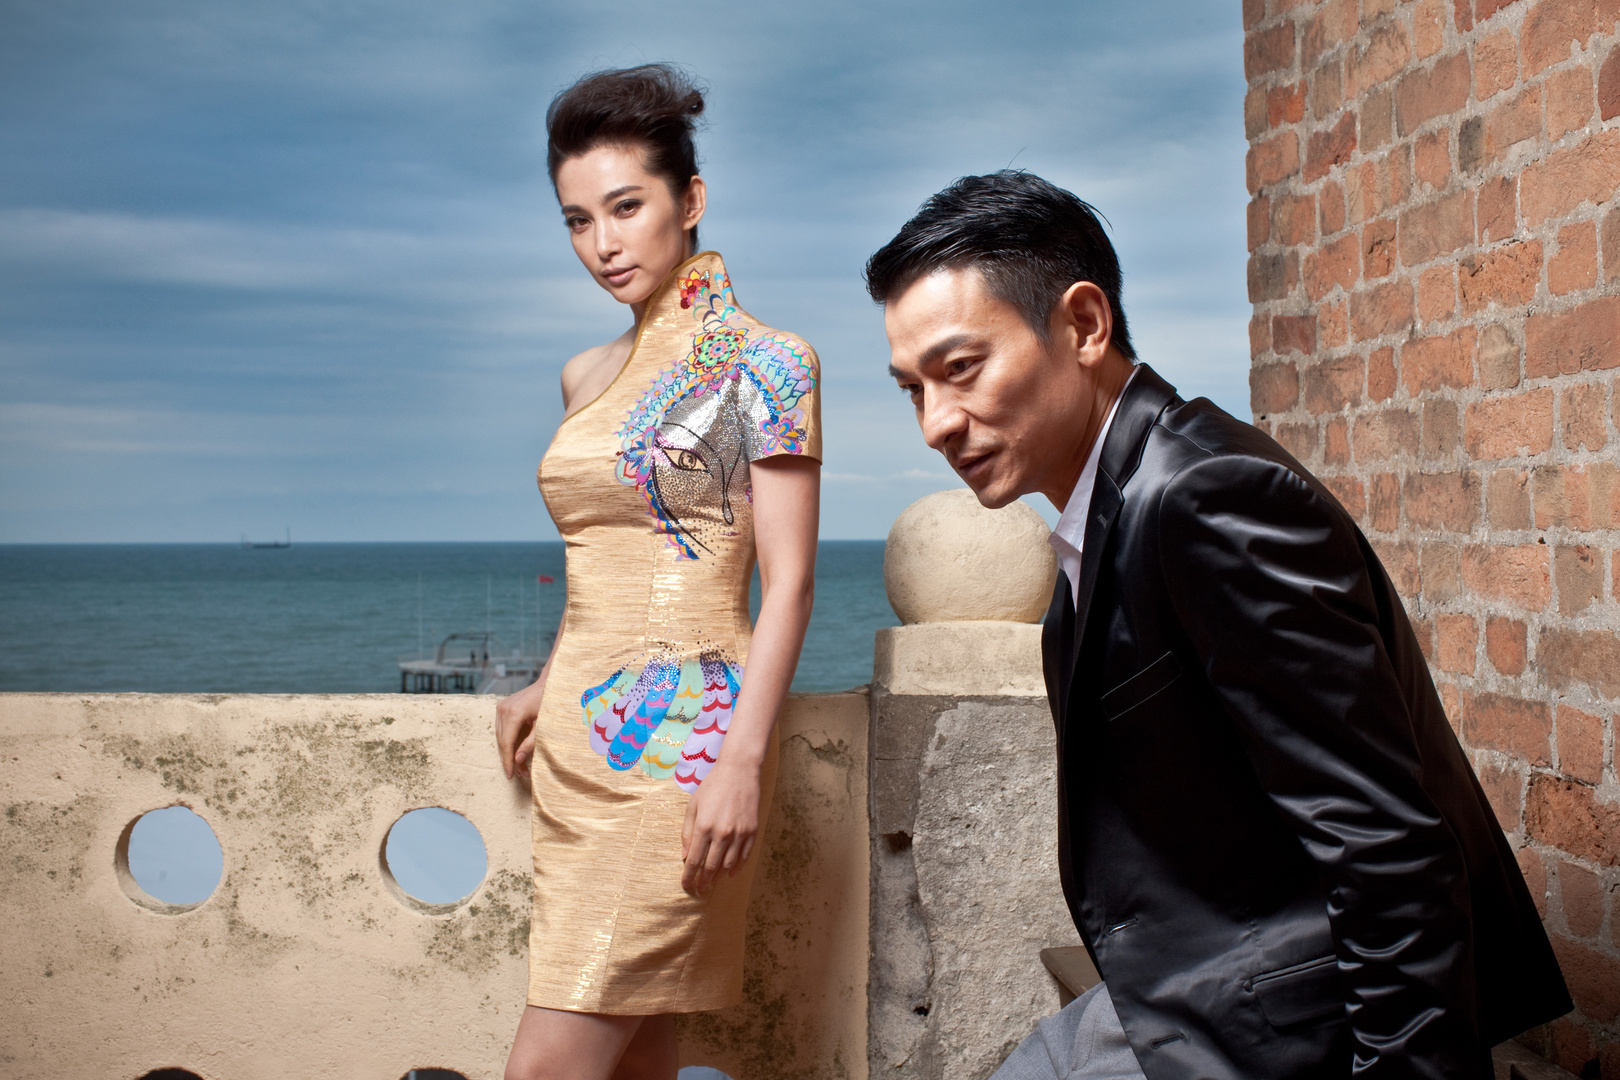 li bingbing and andy lau, actors